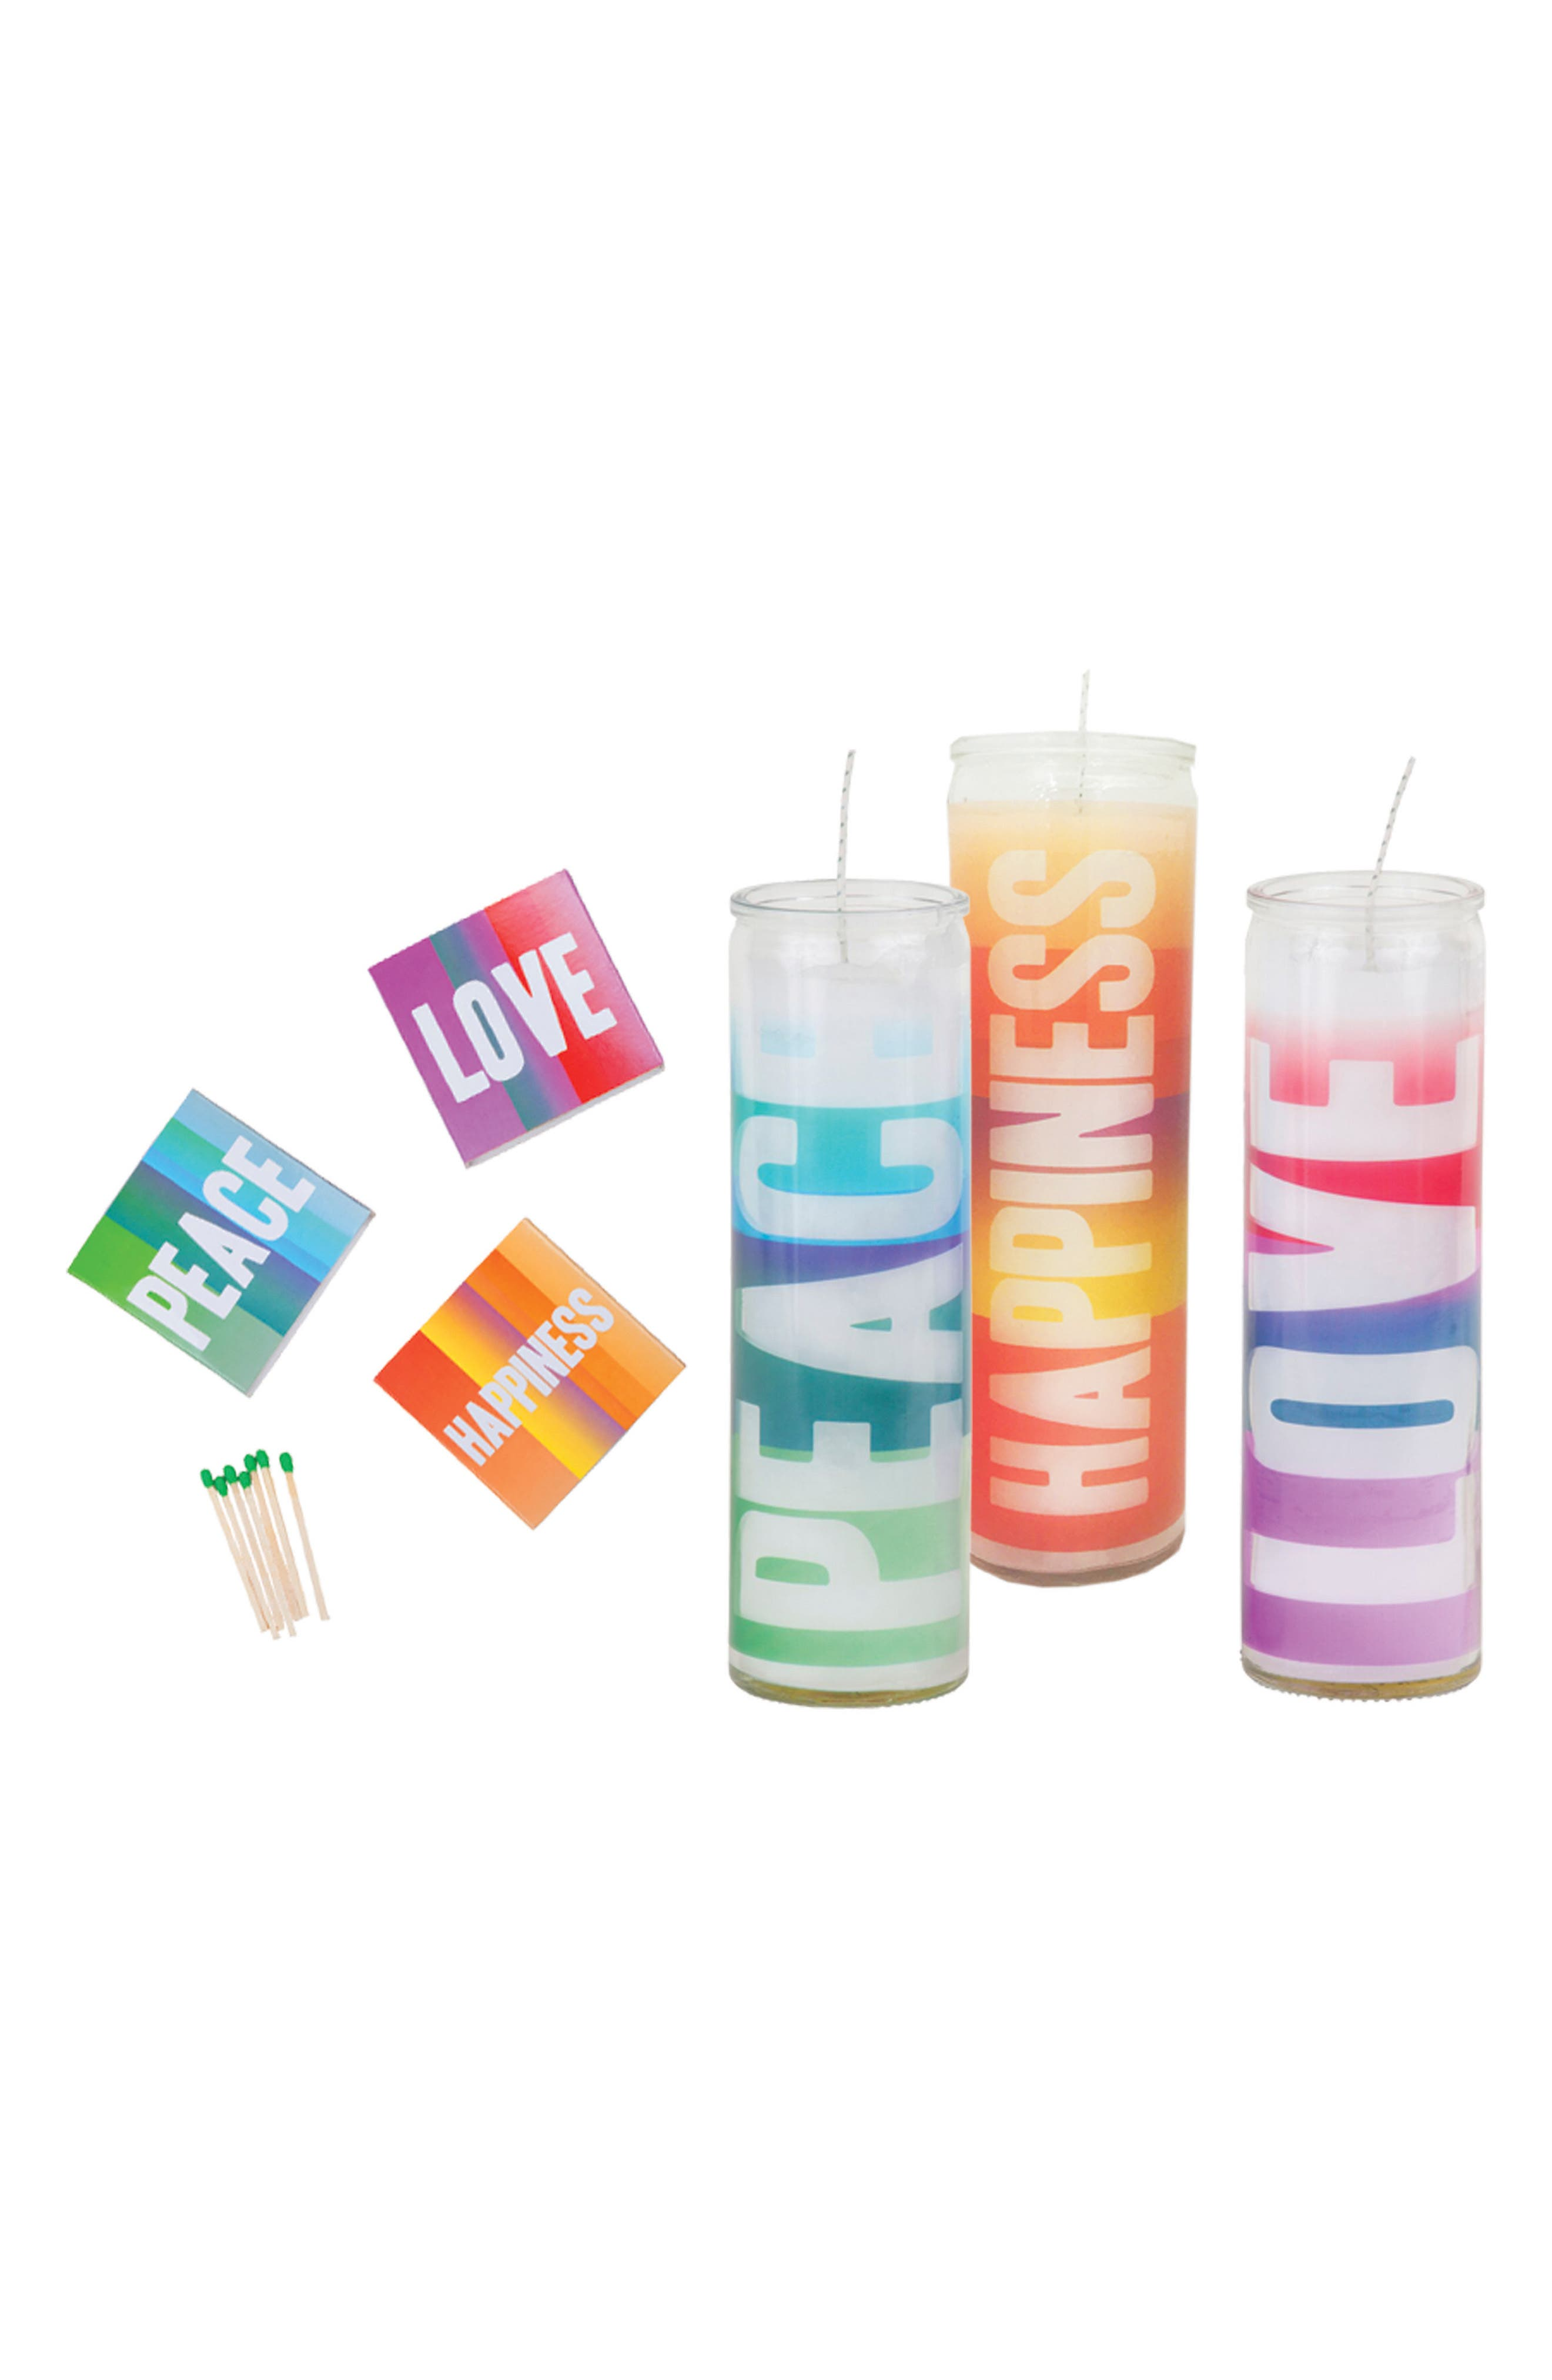 6-Piece Candle Gift Set,                             Main thumbnail 1, color,                             Multi